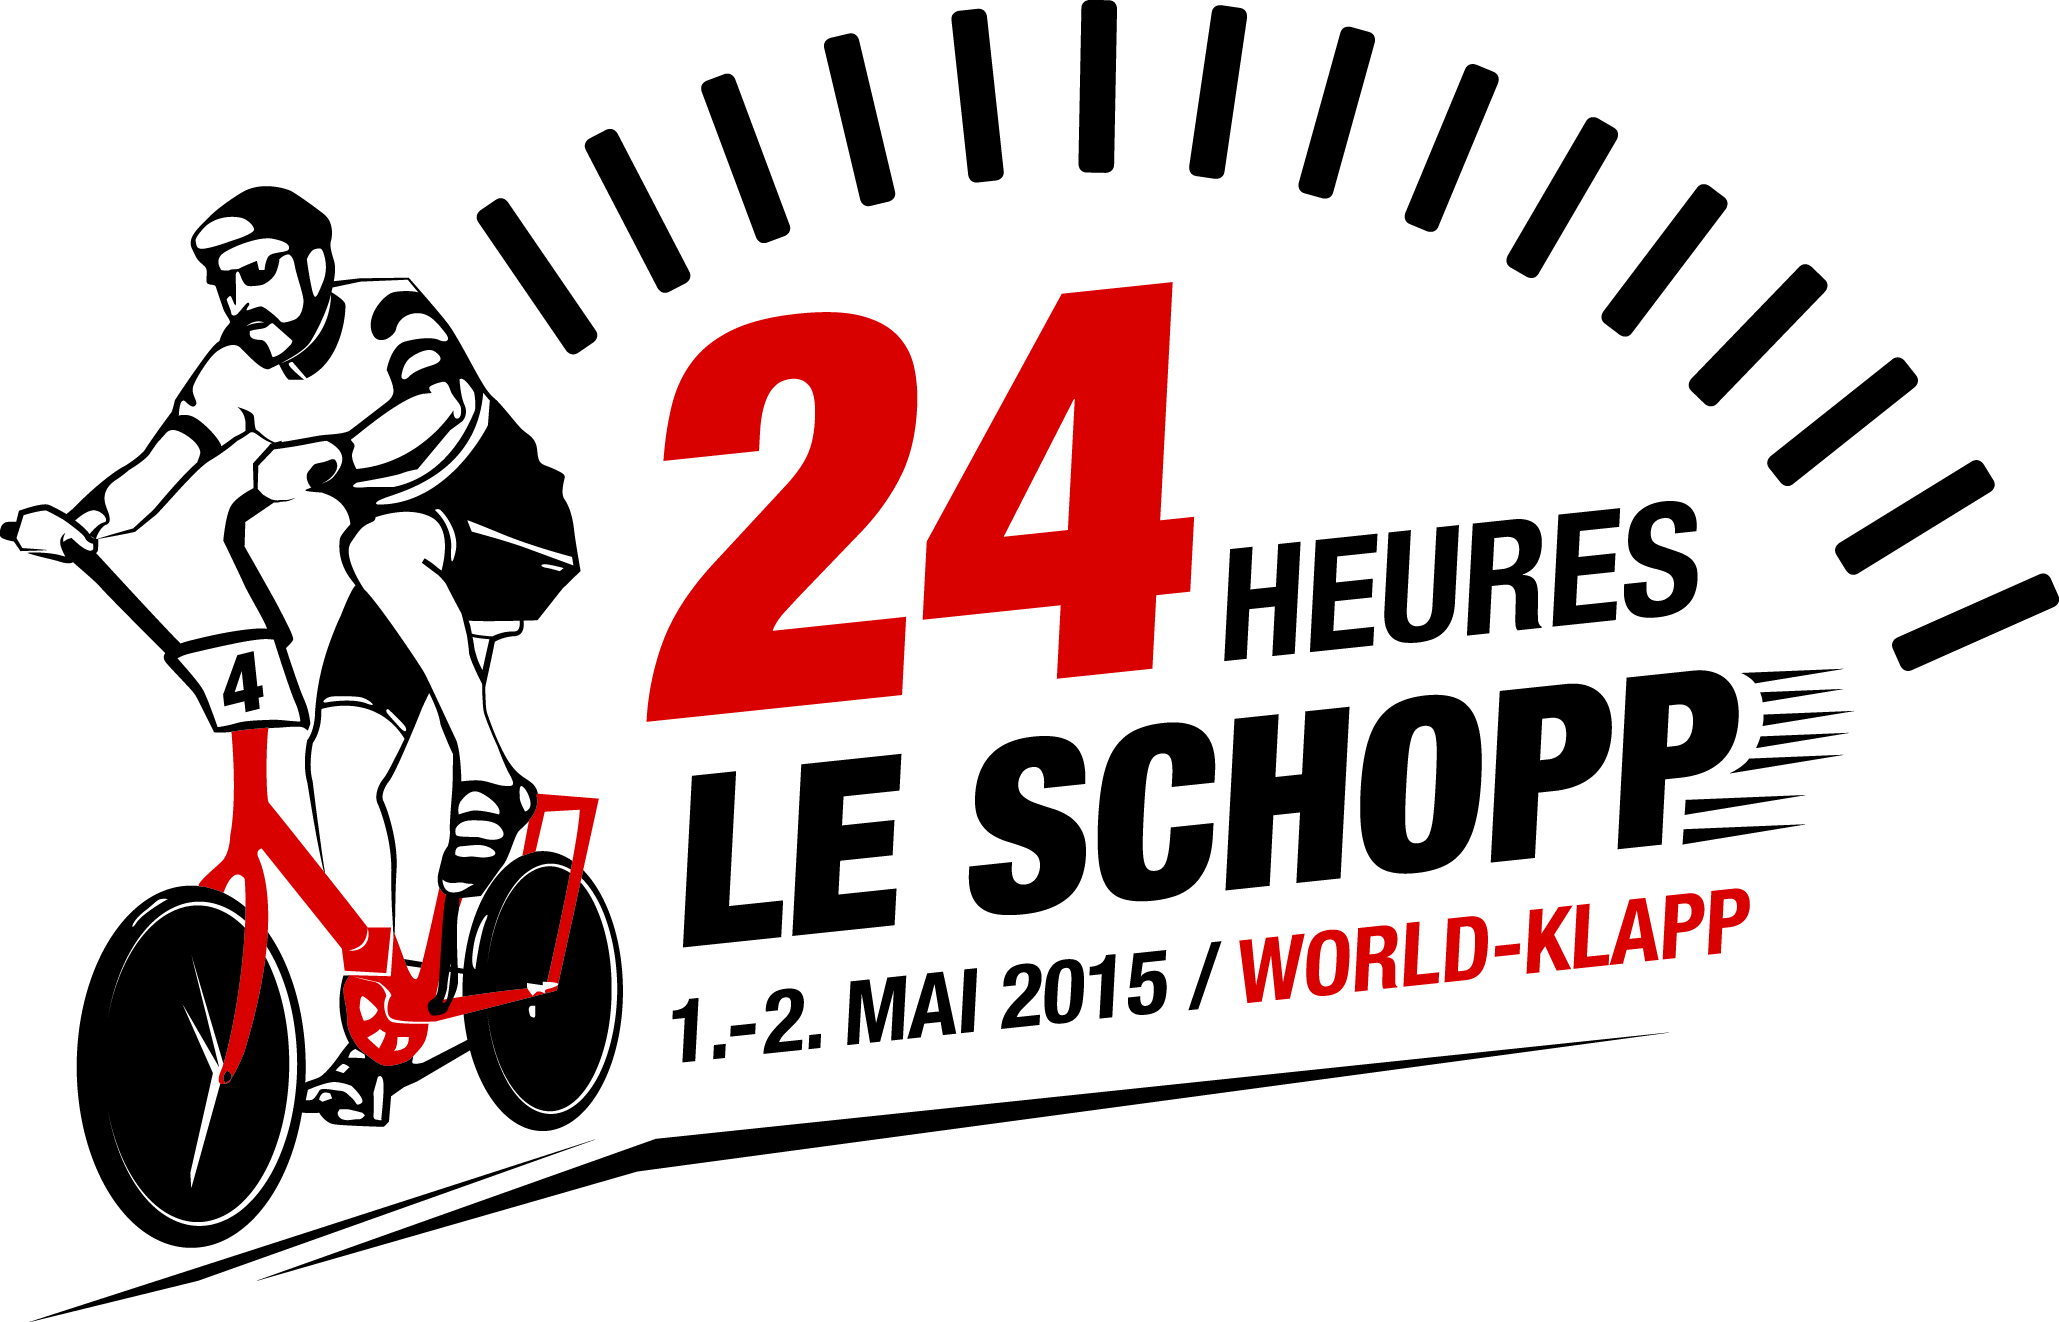 World-Klapp.Schopp.Logo.2015.1